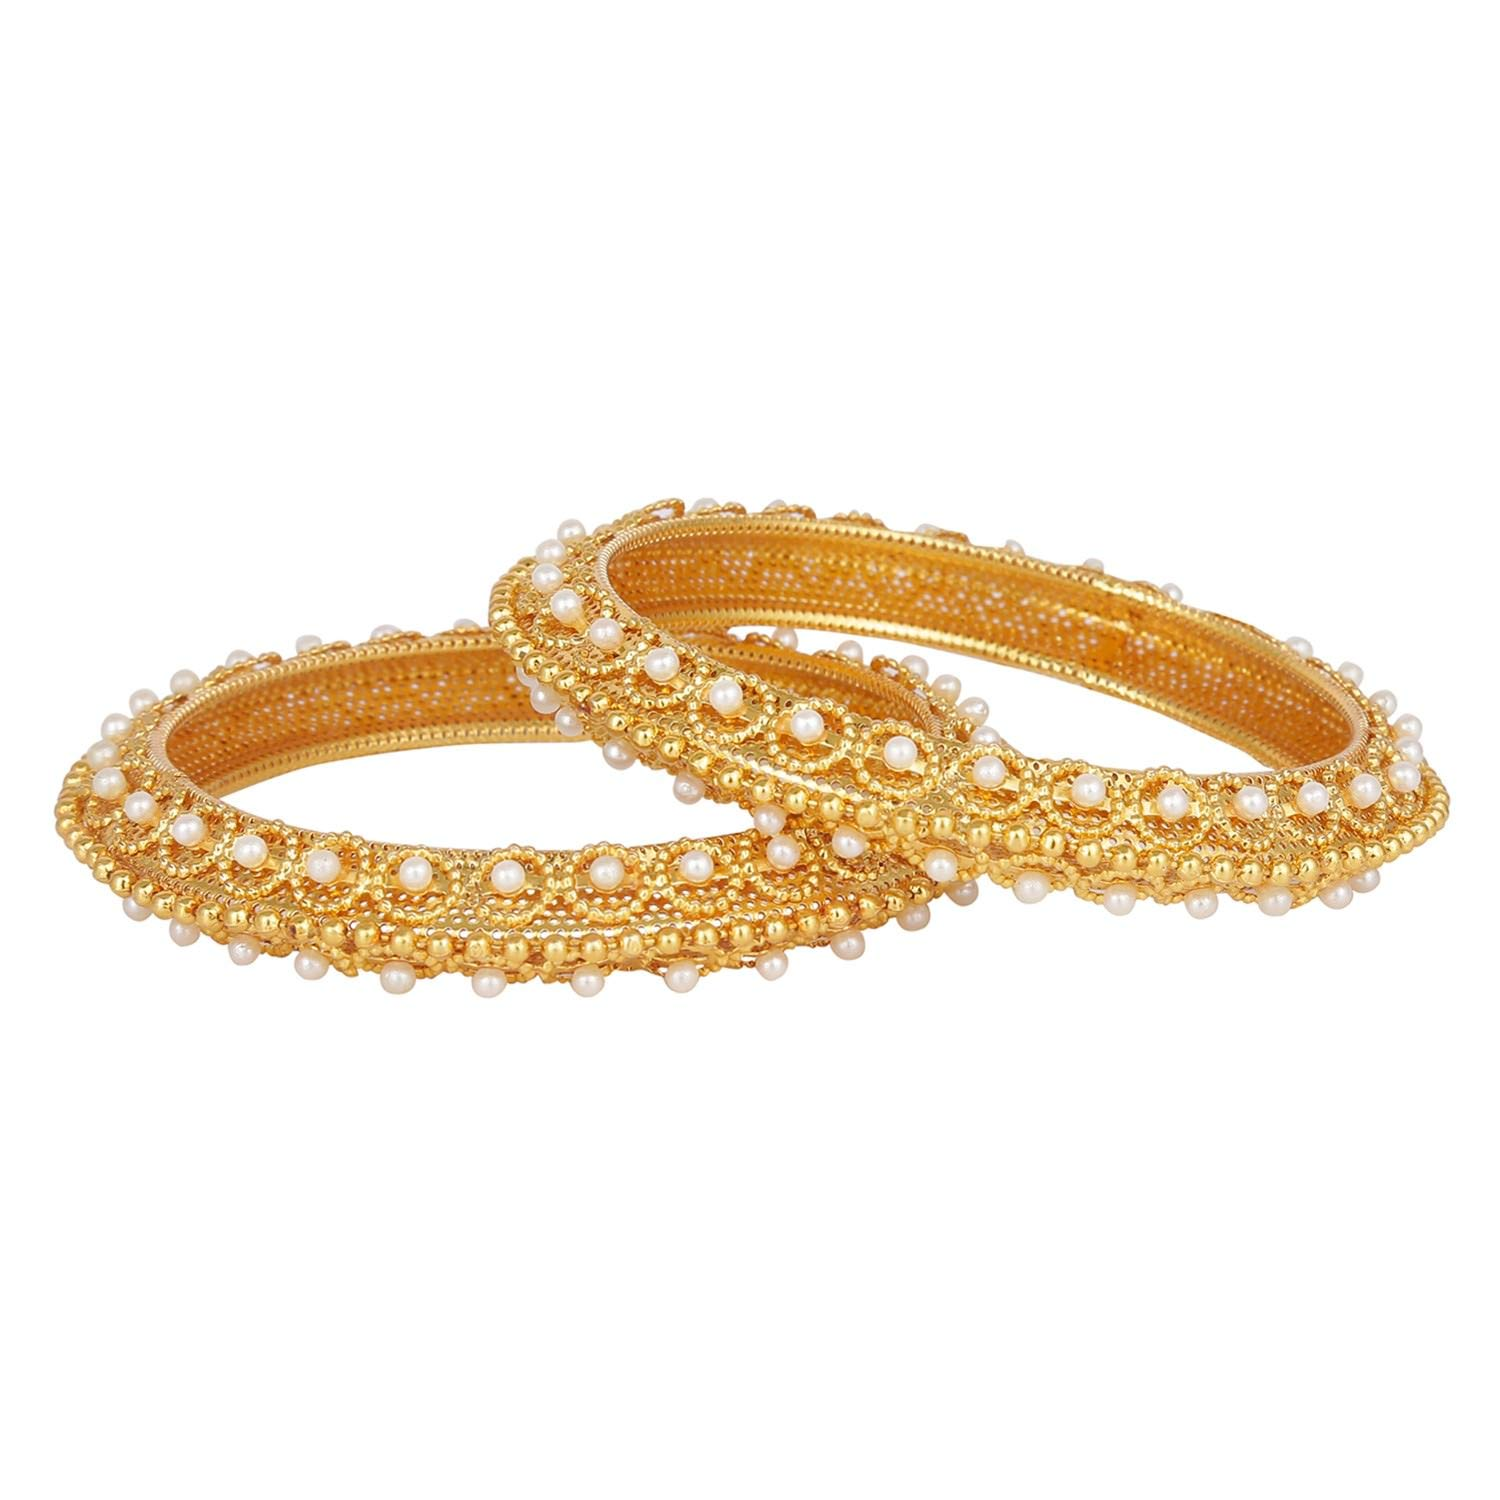 Efulgenz Fashion Jewelry Indian Bollywood 14 K Gold Plated Faux Pearl Beaded Bracelets Bridal Bangle Set (2 Pieces) for Women